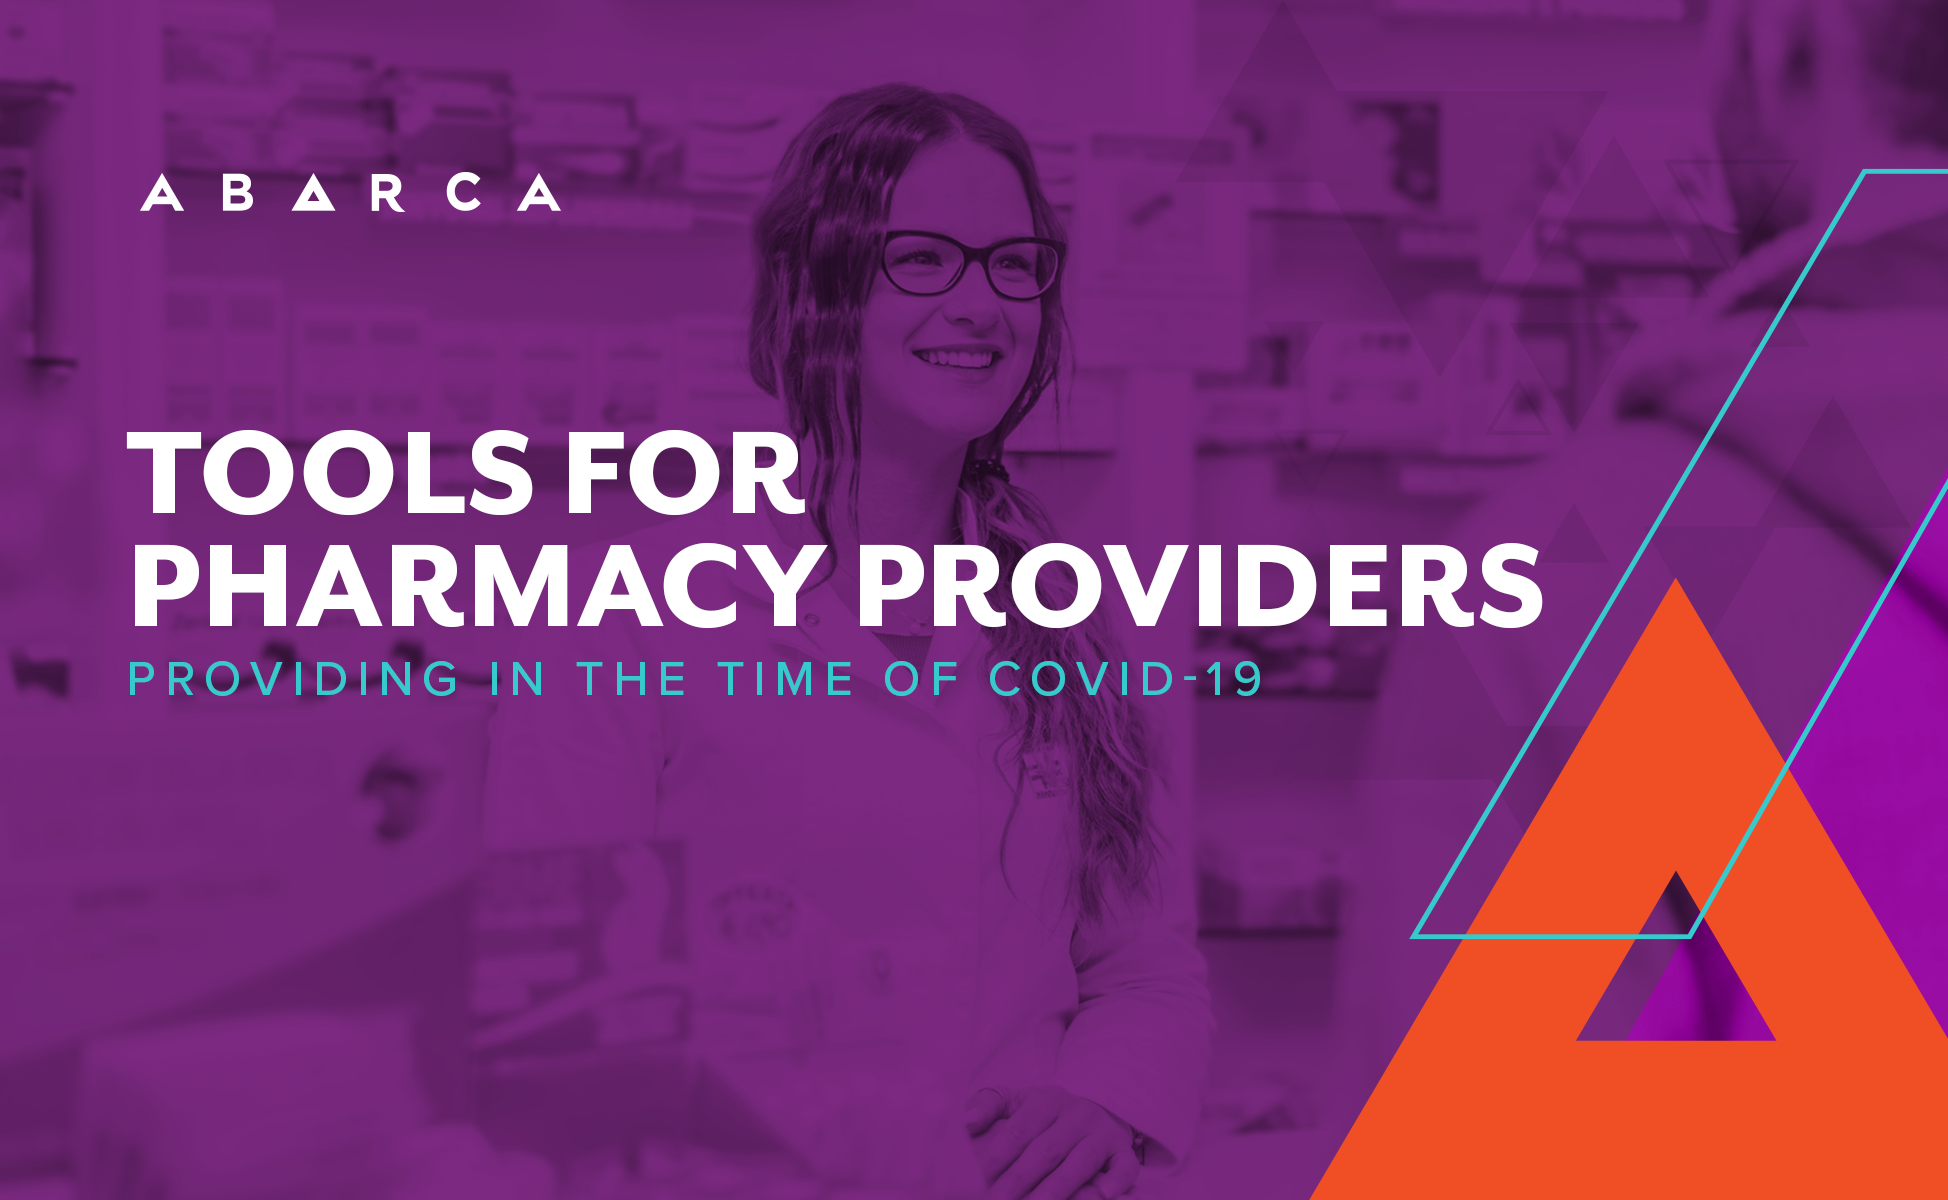 Abarca_Tools for Pharmacy Providers_COVID19